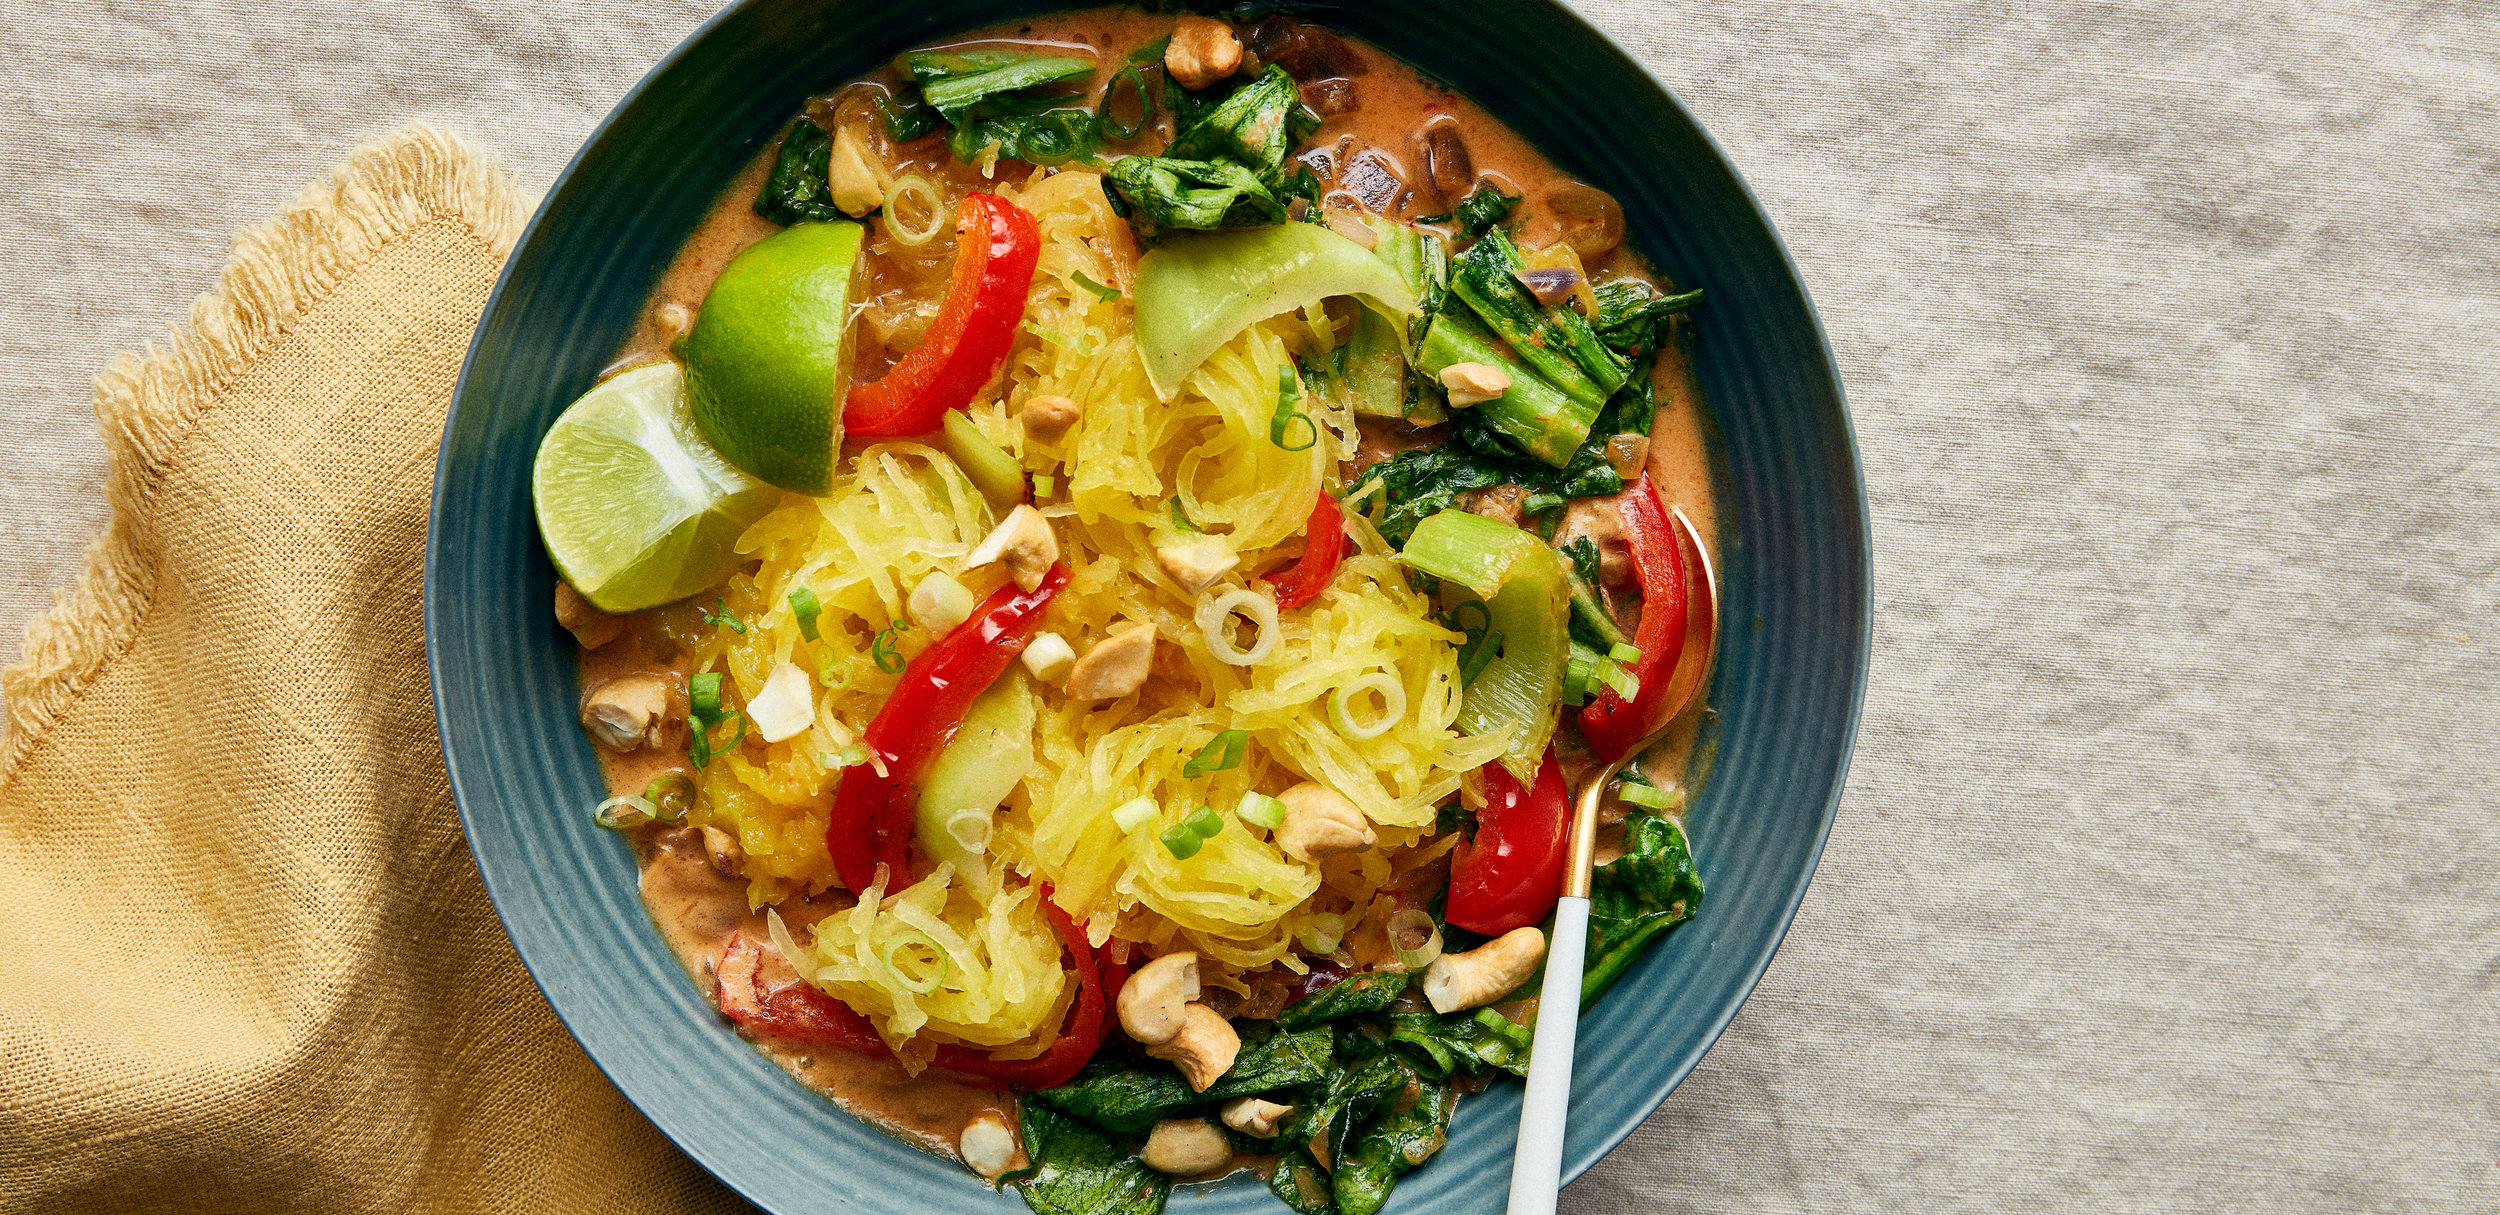 Curried Spaghetti Squash with Red Pepper and Bok Choy — 0011 — HERO.jpg